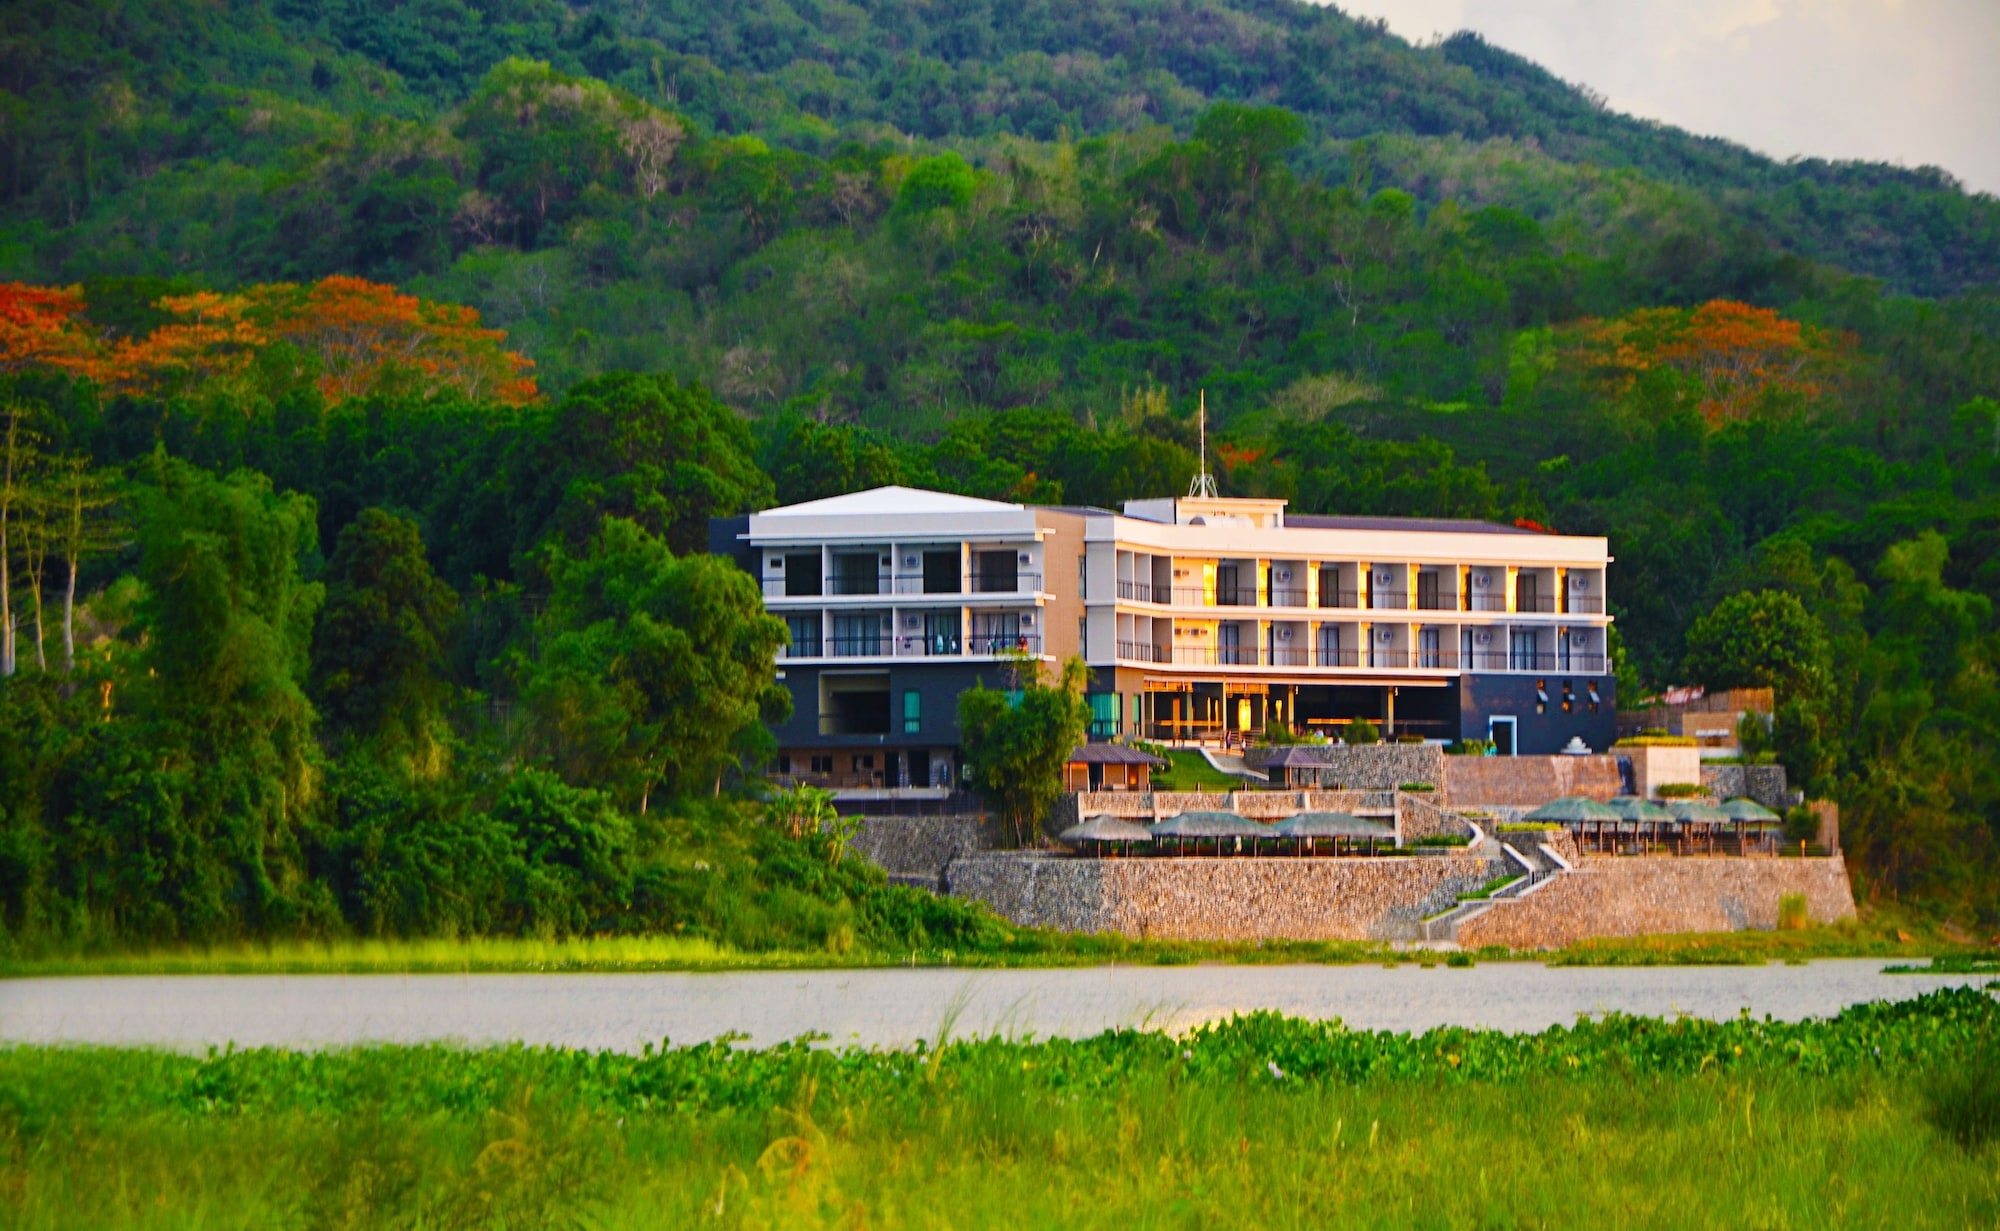 Rivermount Hotel and Resort, Sarrat